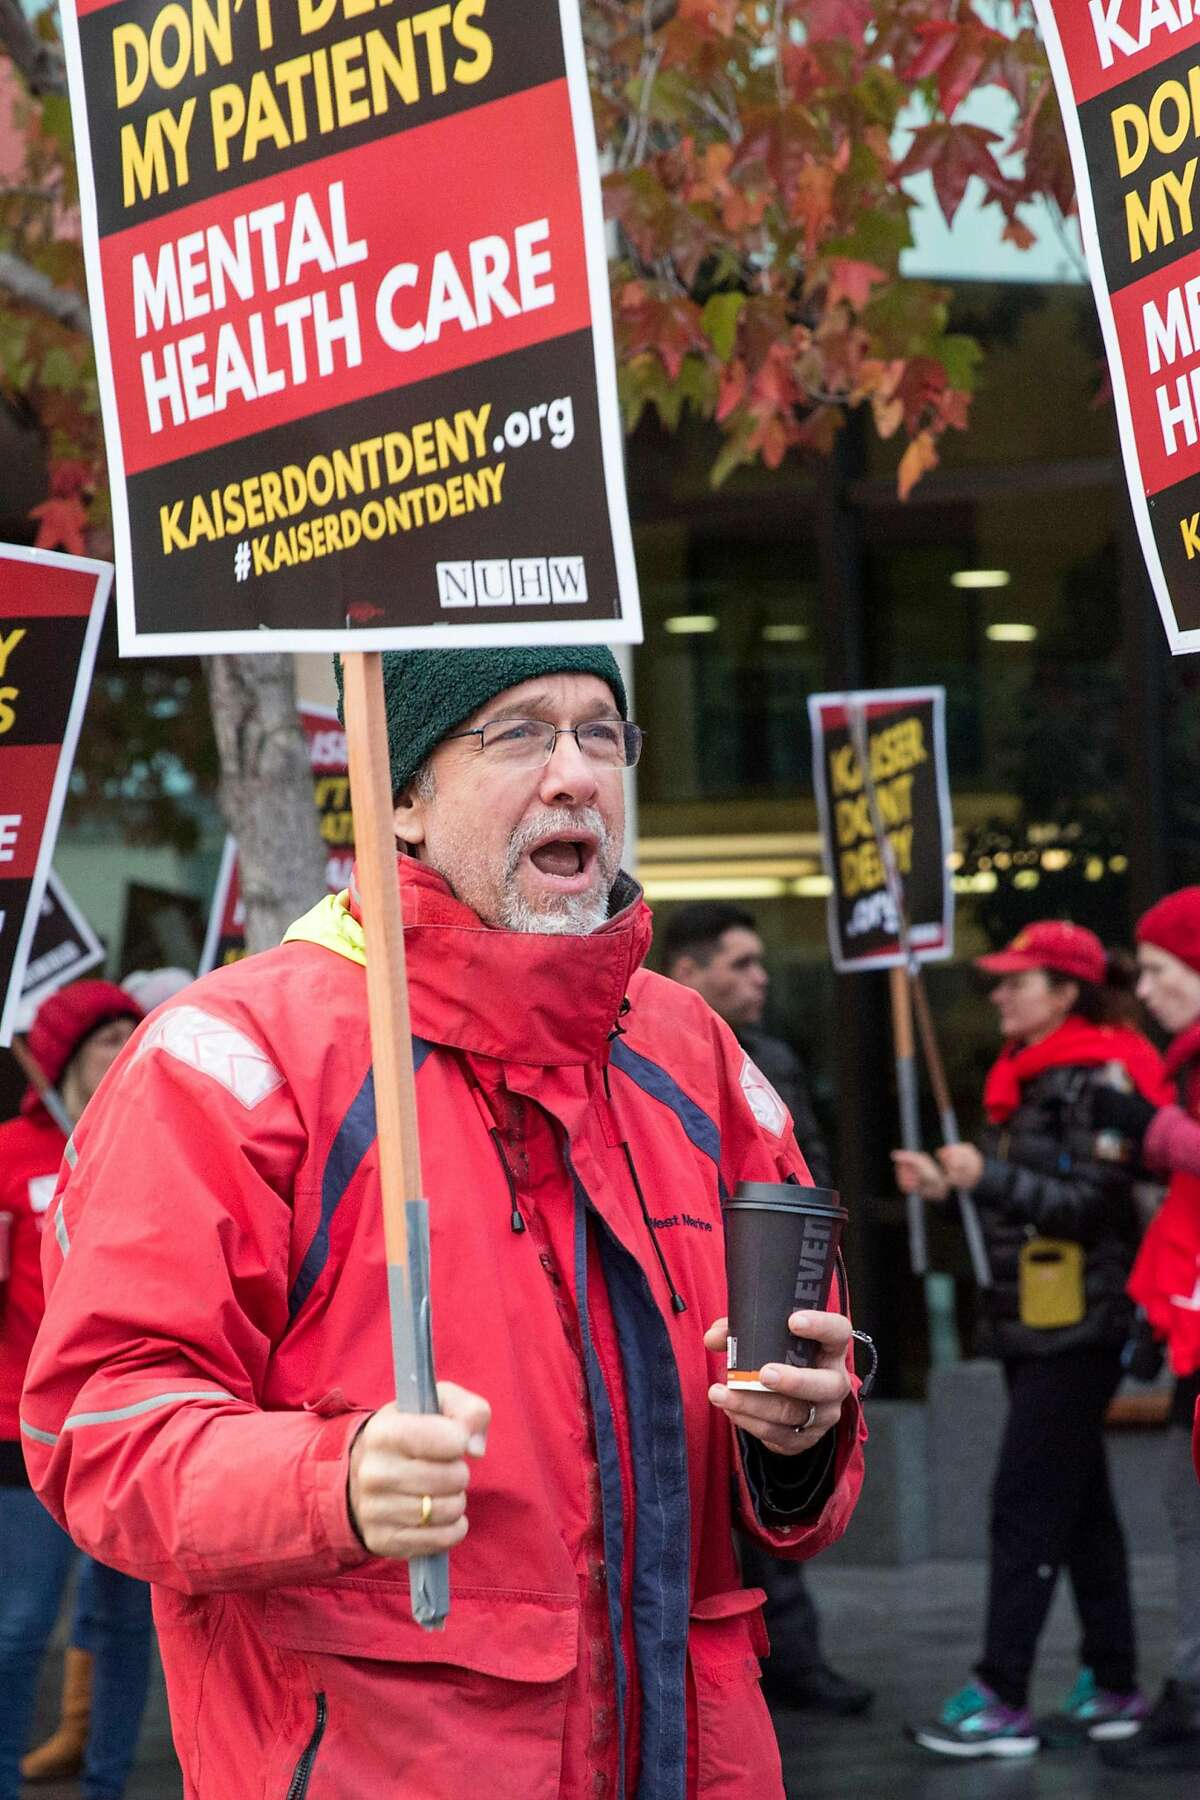 Sean Seward-Katzmiller, Marriage Family Therapist at Kaiser Permanente Santa Rosa Medical Center, protests outside Kaiser Permanente San Francisco Medical Center due to the contract dispute between workers' union, National Union of Healthcare Workers, and Kaiser. Monday, December 10, 2018 in San Francisco, Calif.